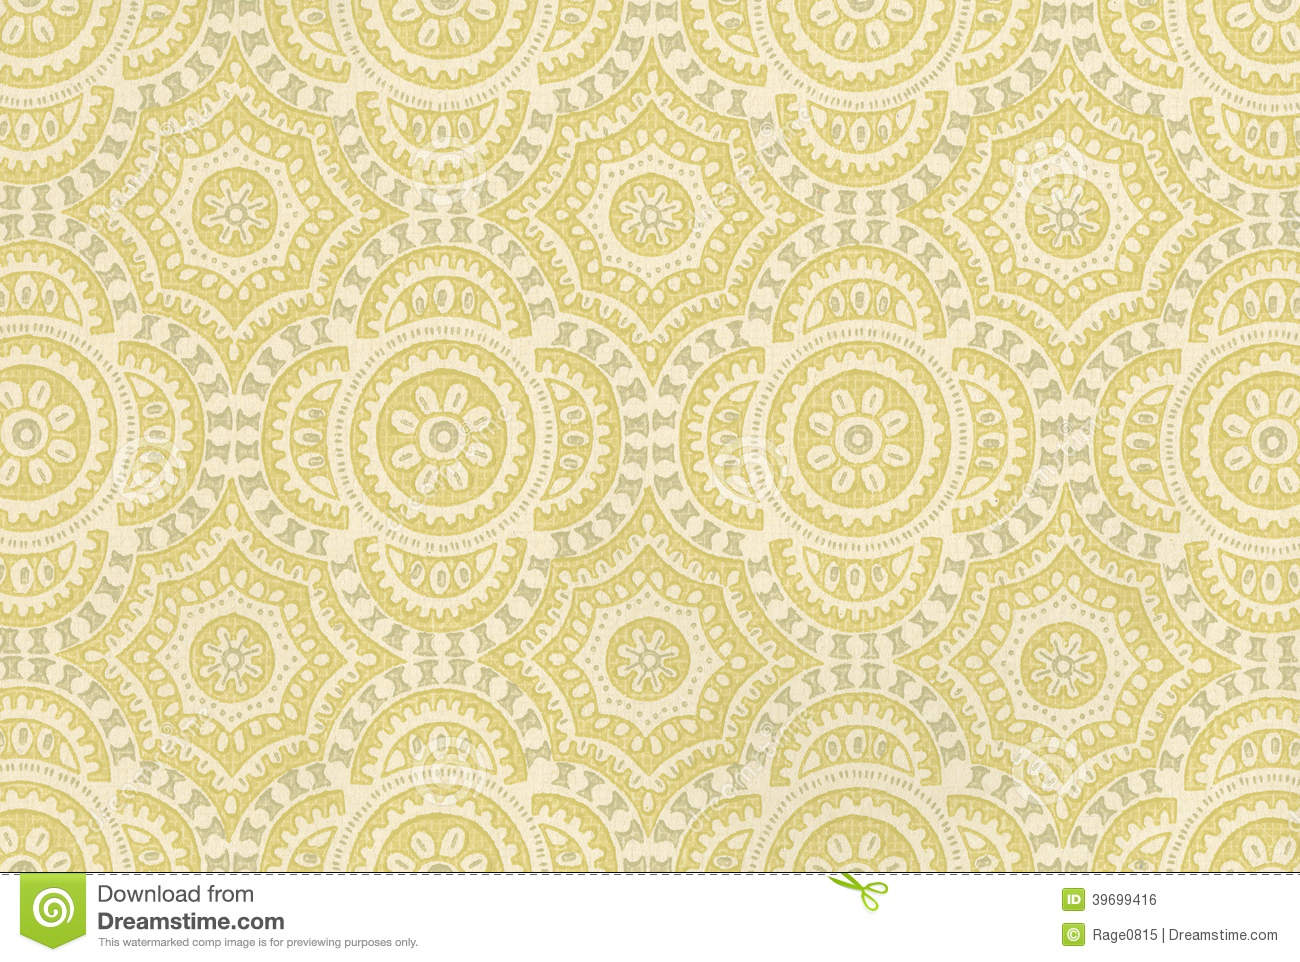 high resolution wallpaper with floral pattern stock photo - image of